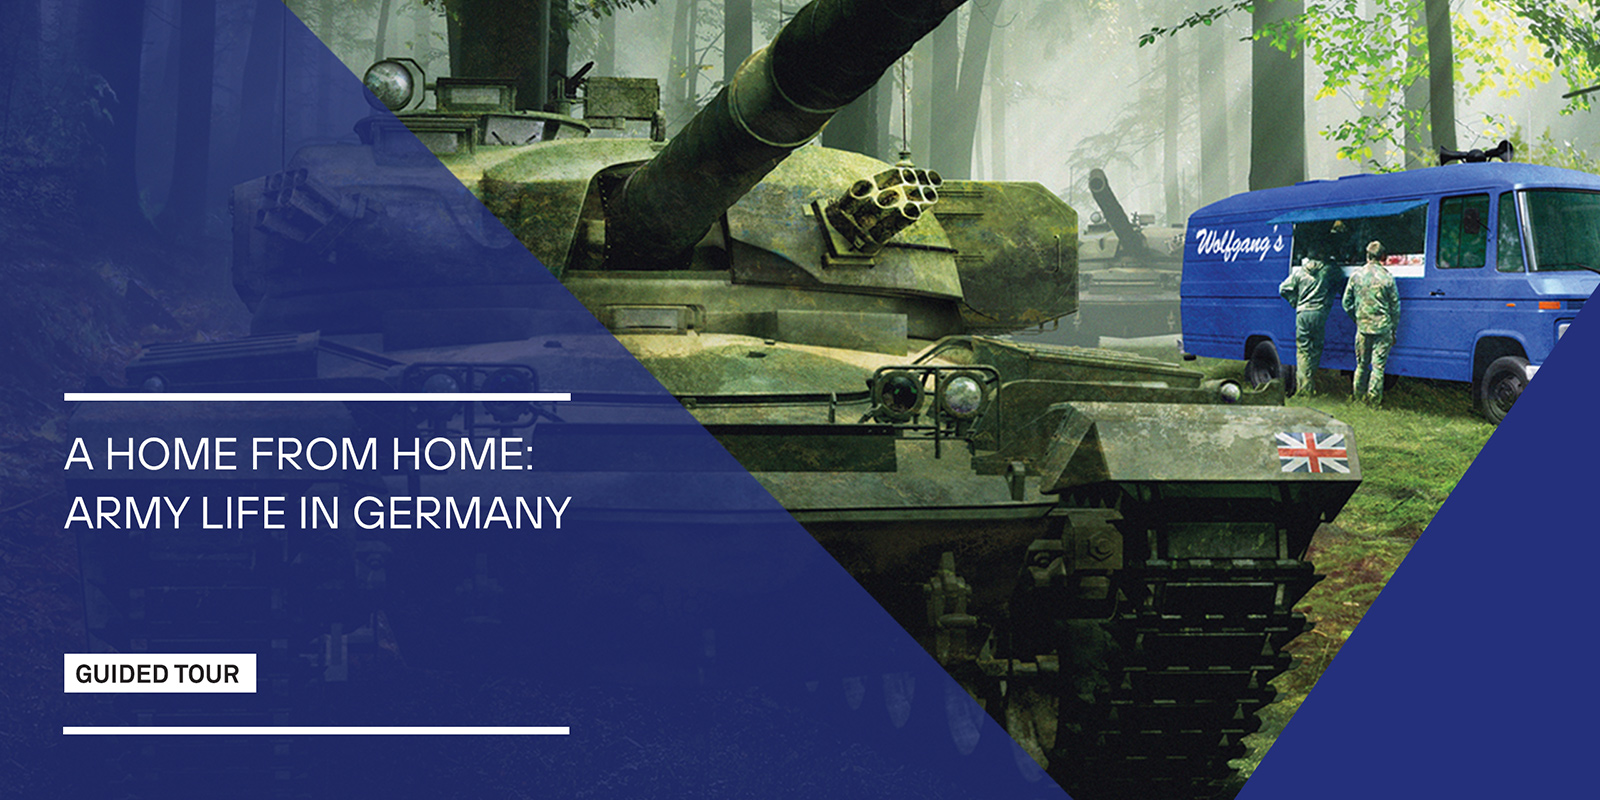 Army Life in Germany: Virtual Tour